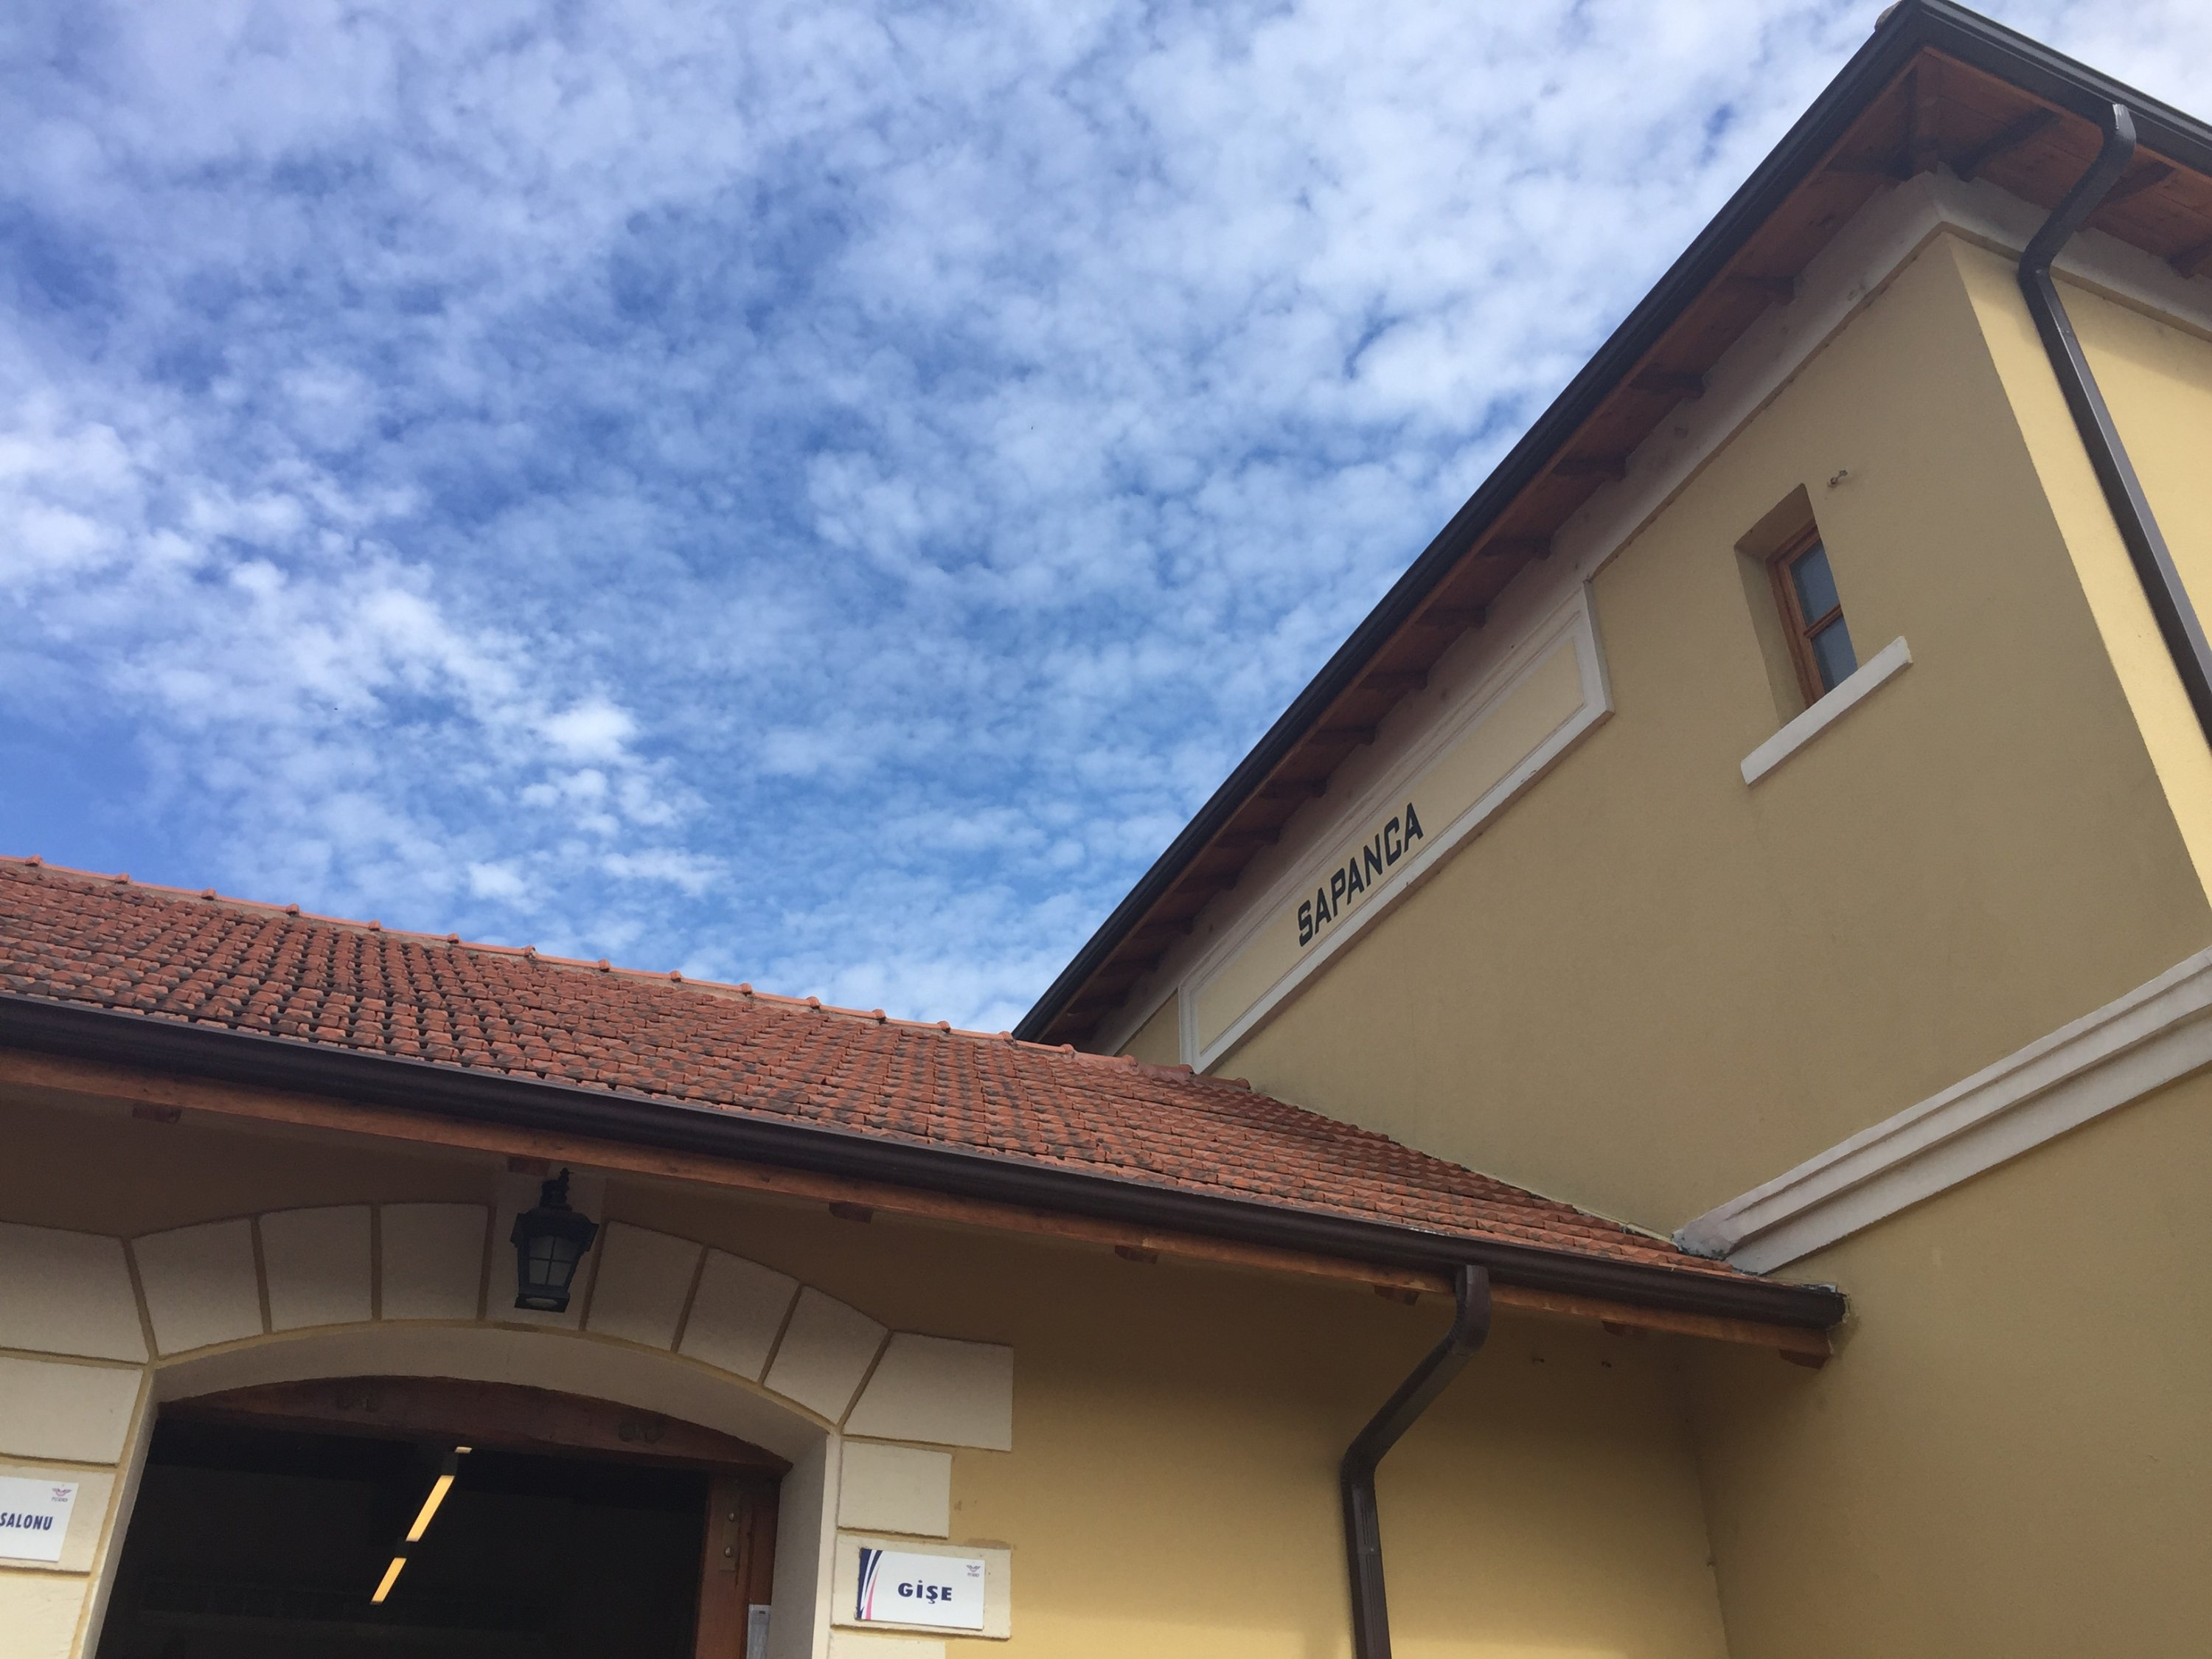 The train station in Sapanca. (Photo courtesy of Allison Tinch)